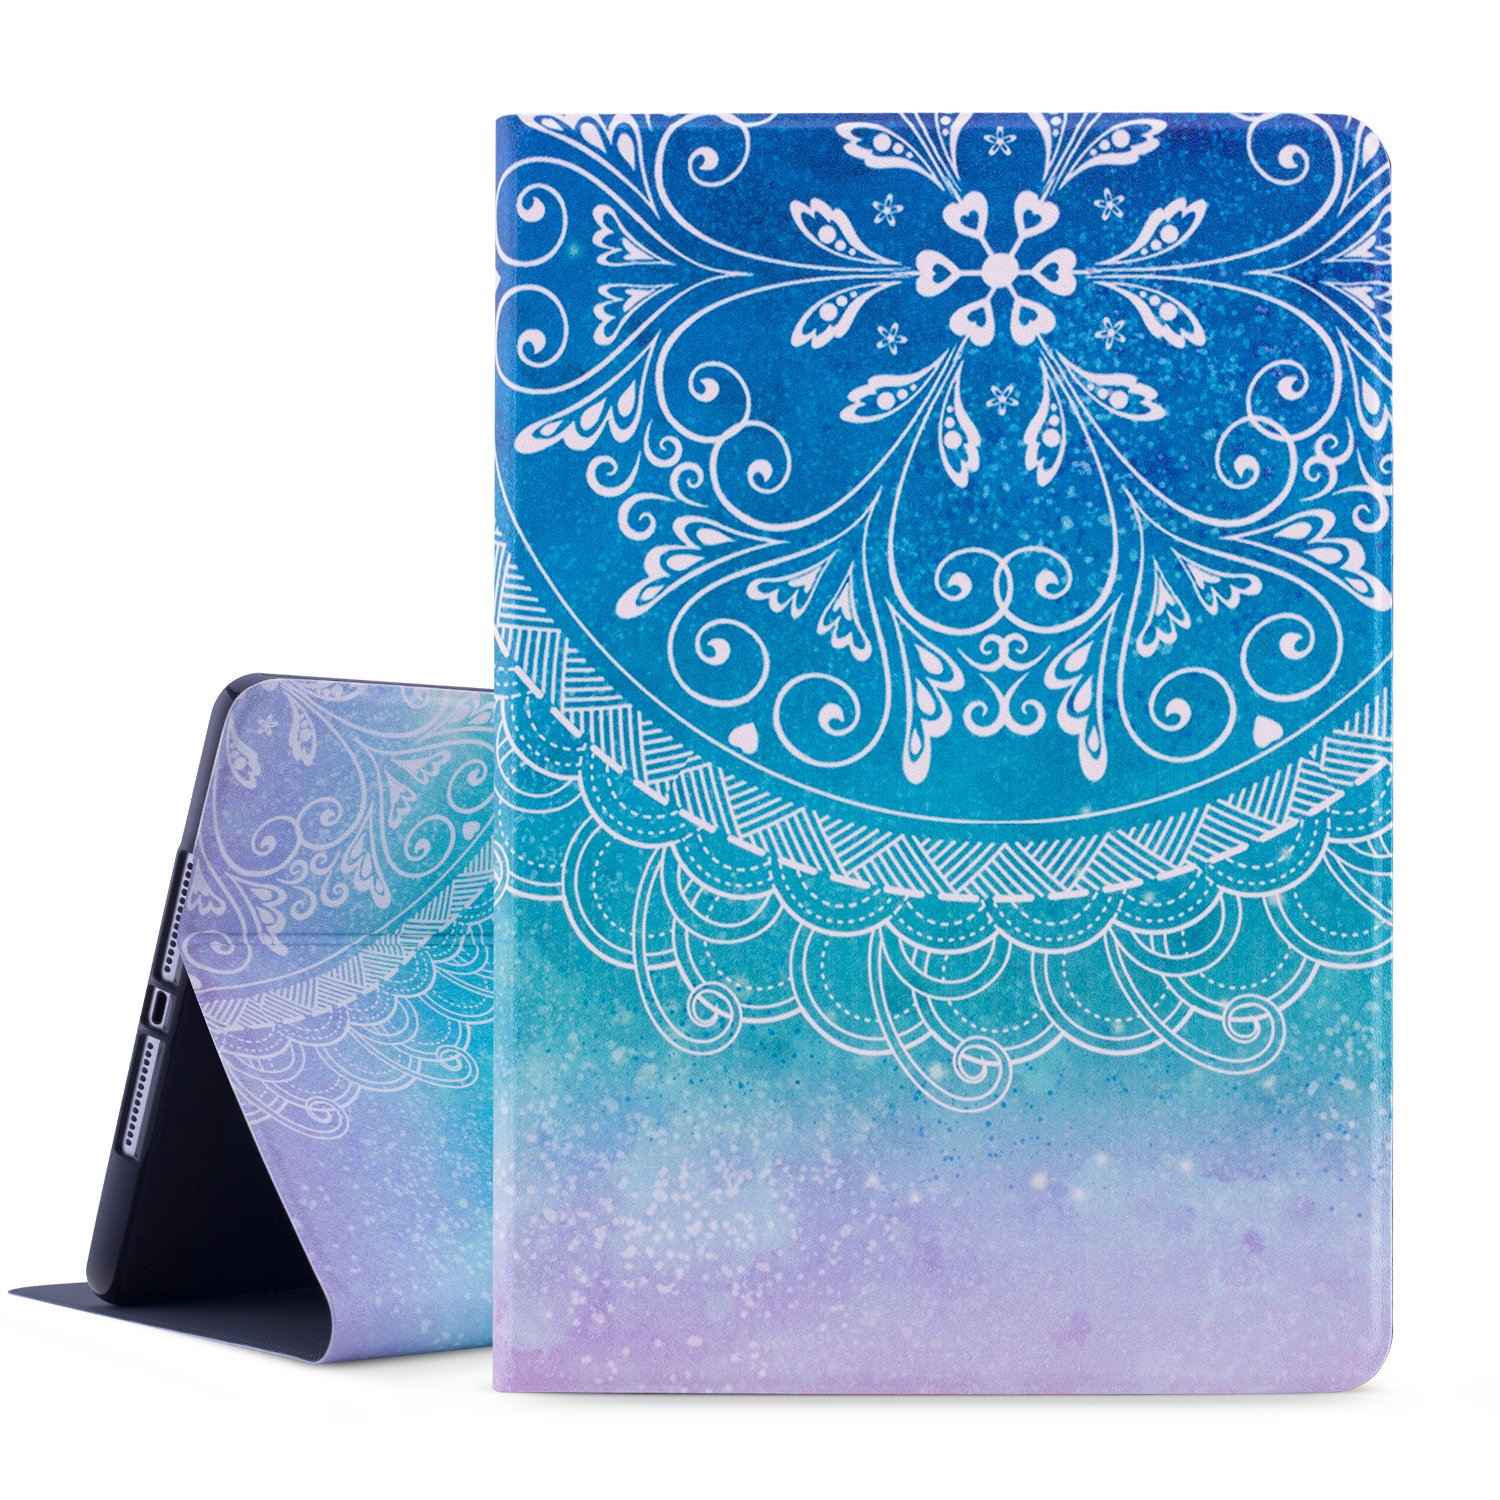 Dopup iPad 9.7 Case 2018/2017 iPad Case, Premium Leather Folio Case Cover for Apple iPad 9.7 inch, Multiple Viewing Angles Stand, Also Fits iPad Air 2/ iPad Air (Blue Mandara)